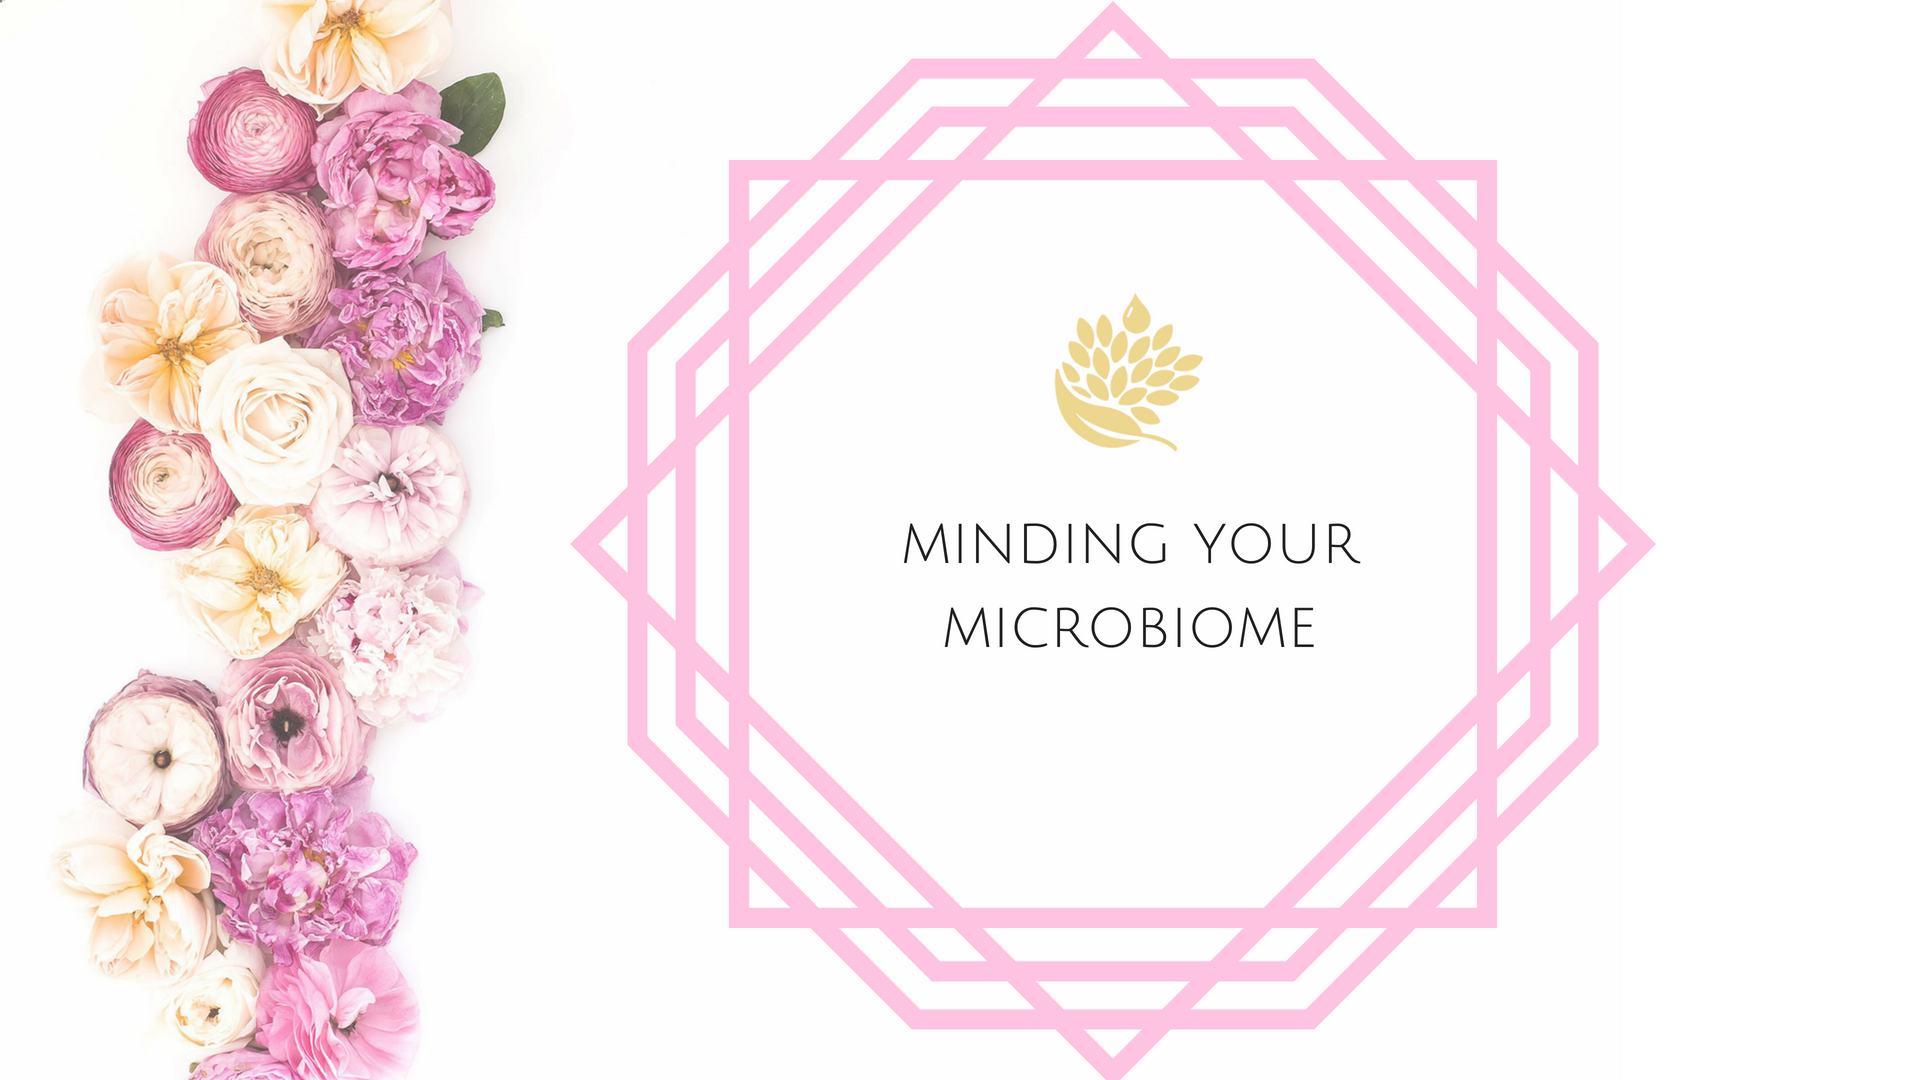 Minding Your Microbiome